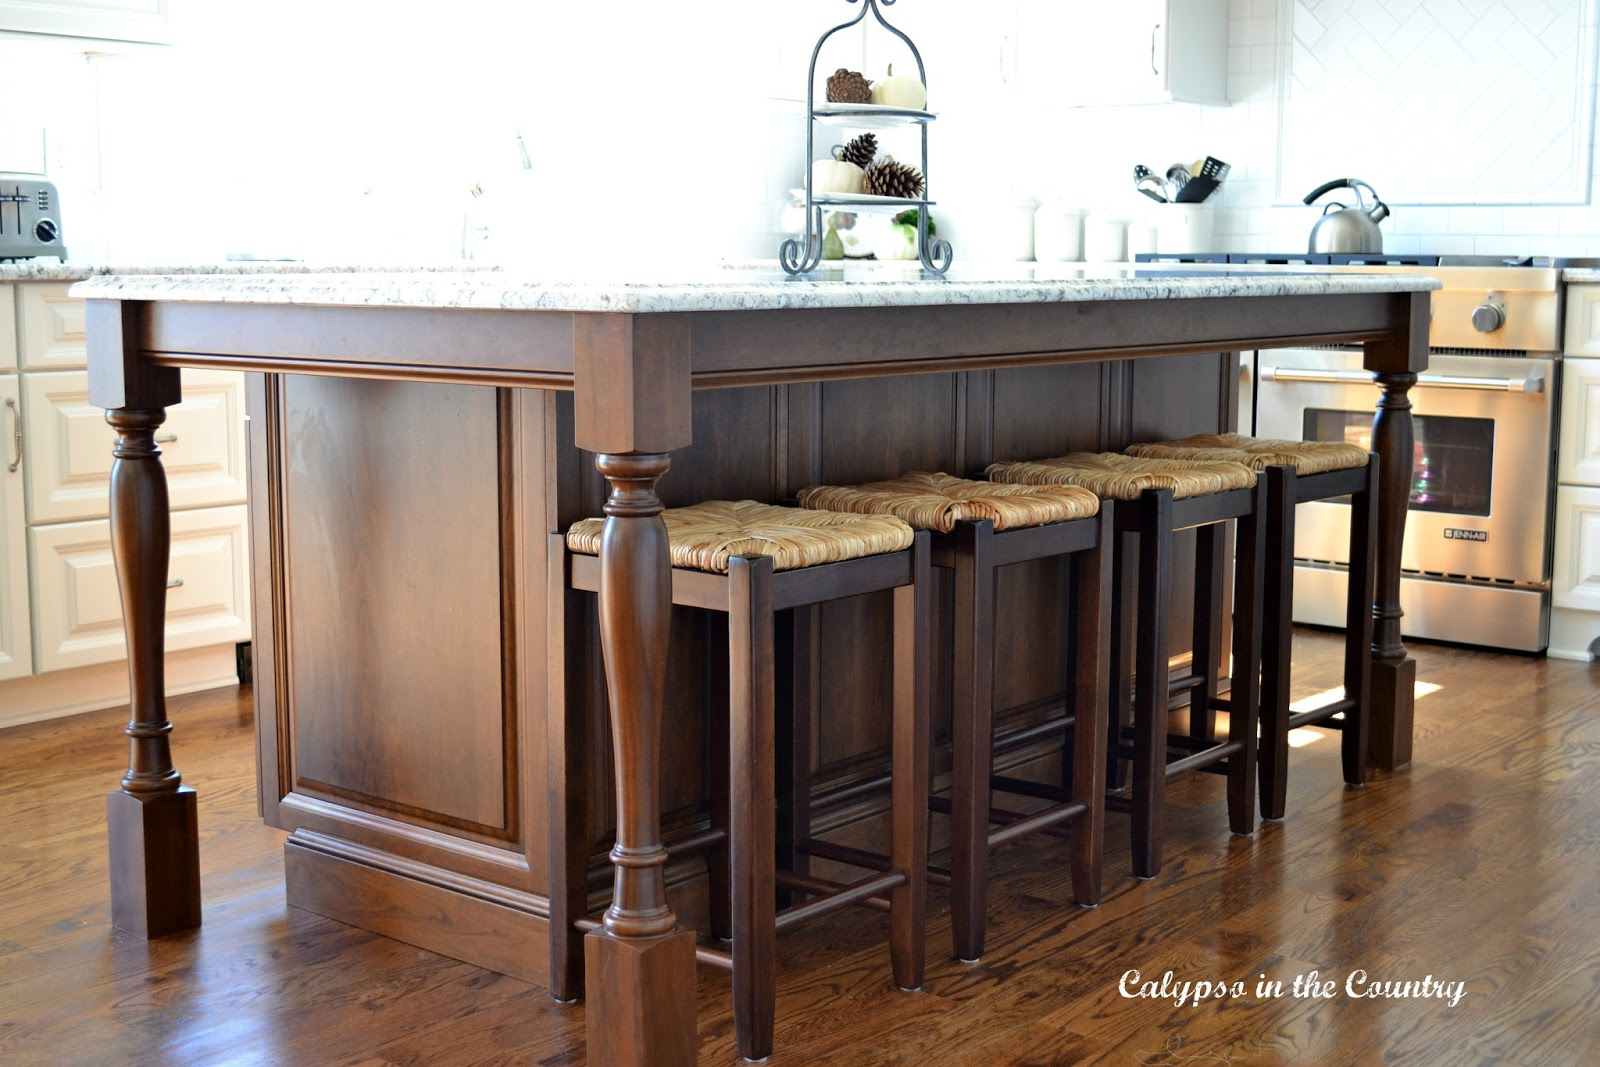 New Counter Stools - the decision has been made!